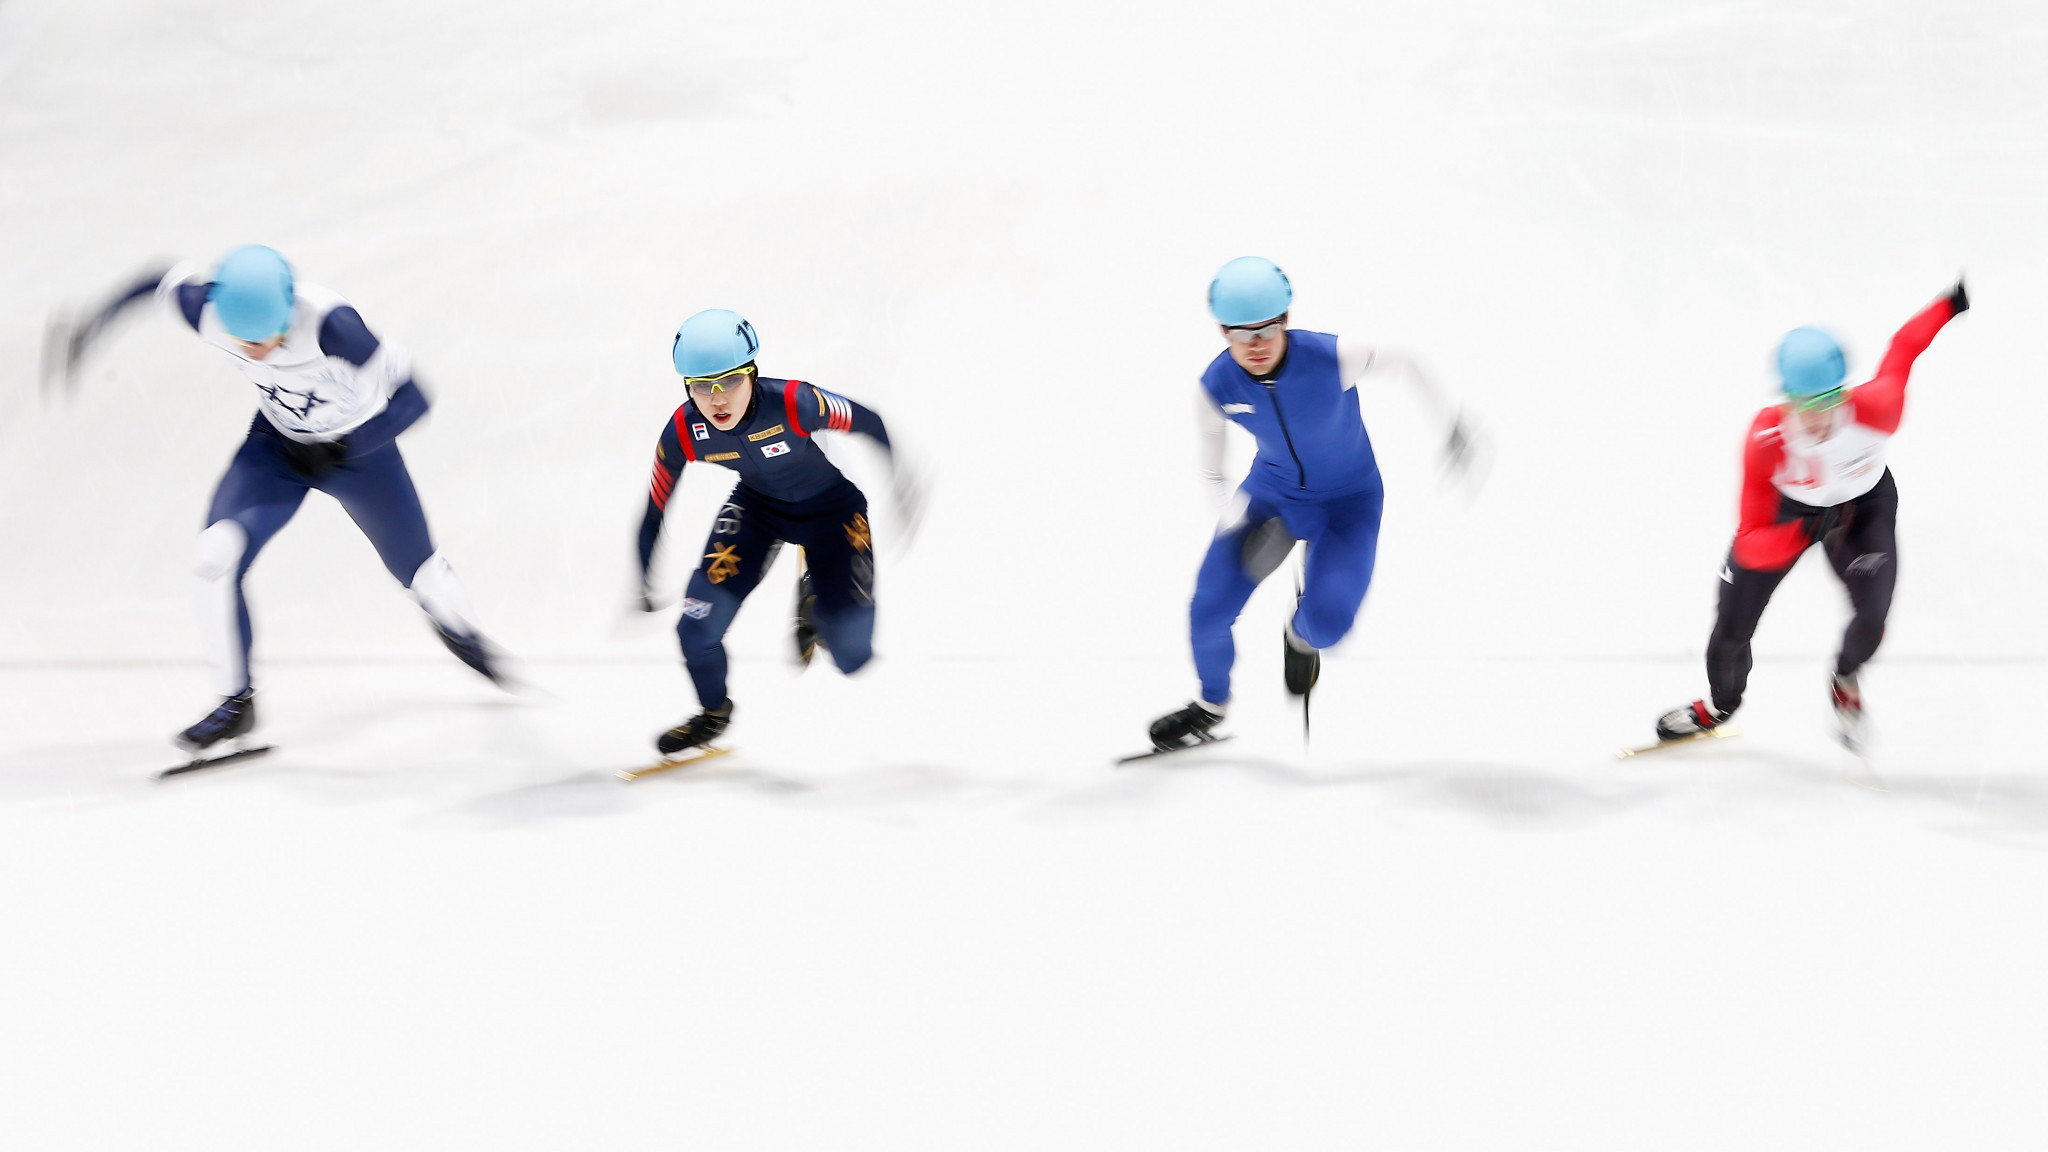 Park wraps up overall 1,000m title at ISU Short Track World Cup